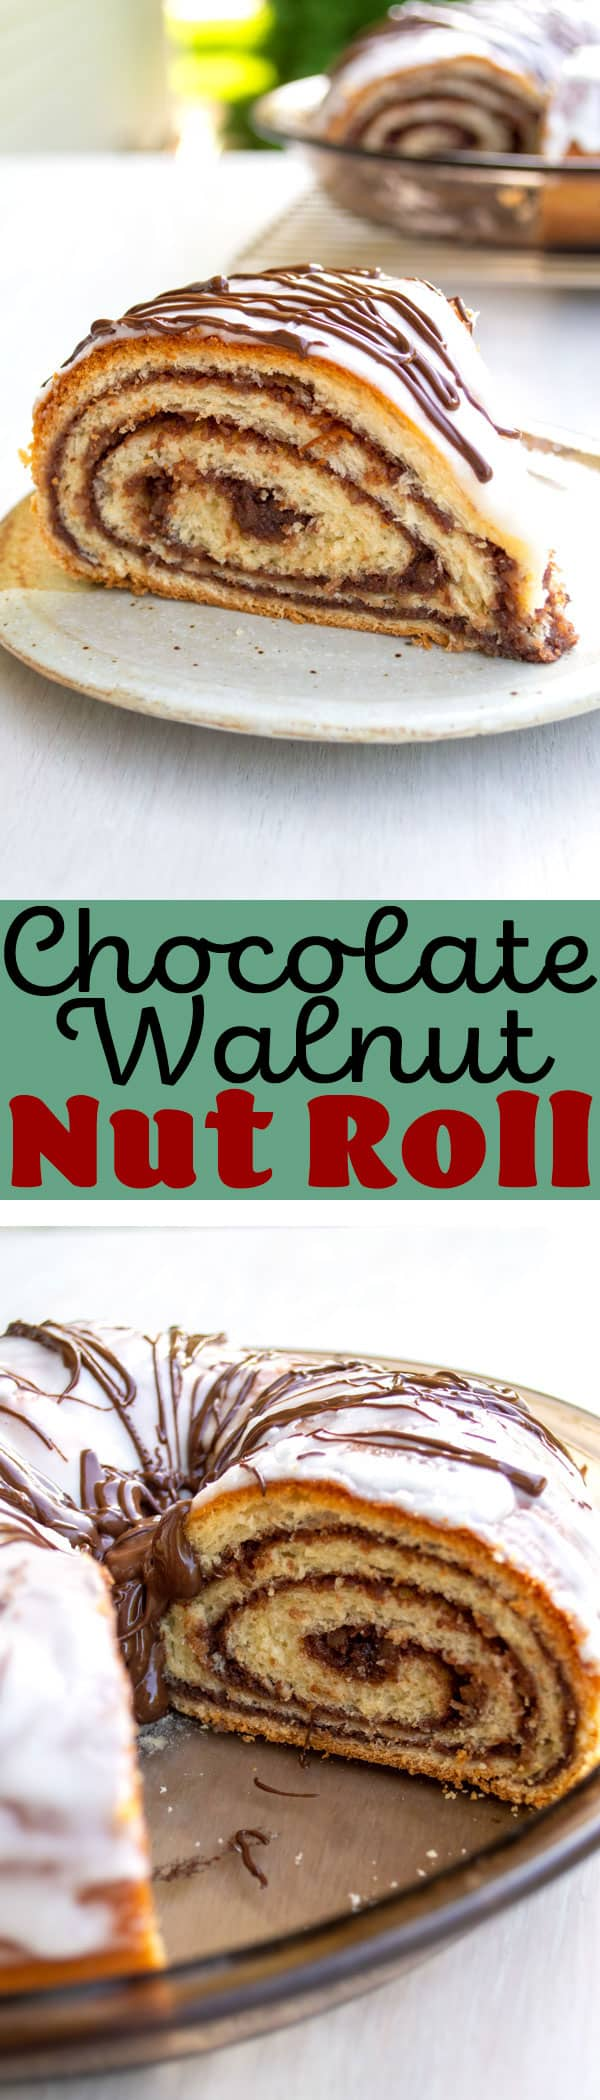 Potica - old fashioned Polish nut roll recipe with easy chocolate walnut filling! #christmas #breakfast